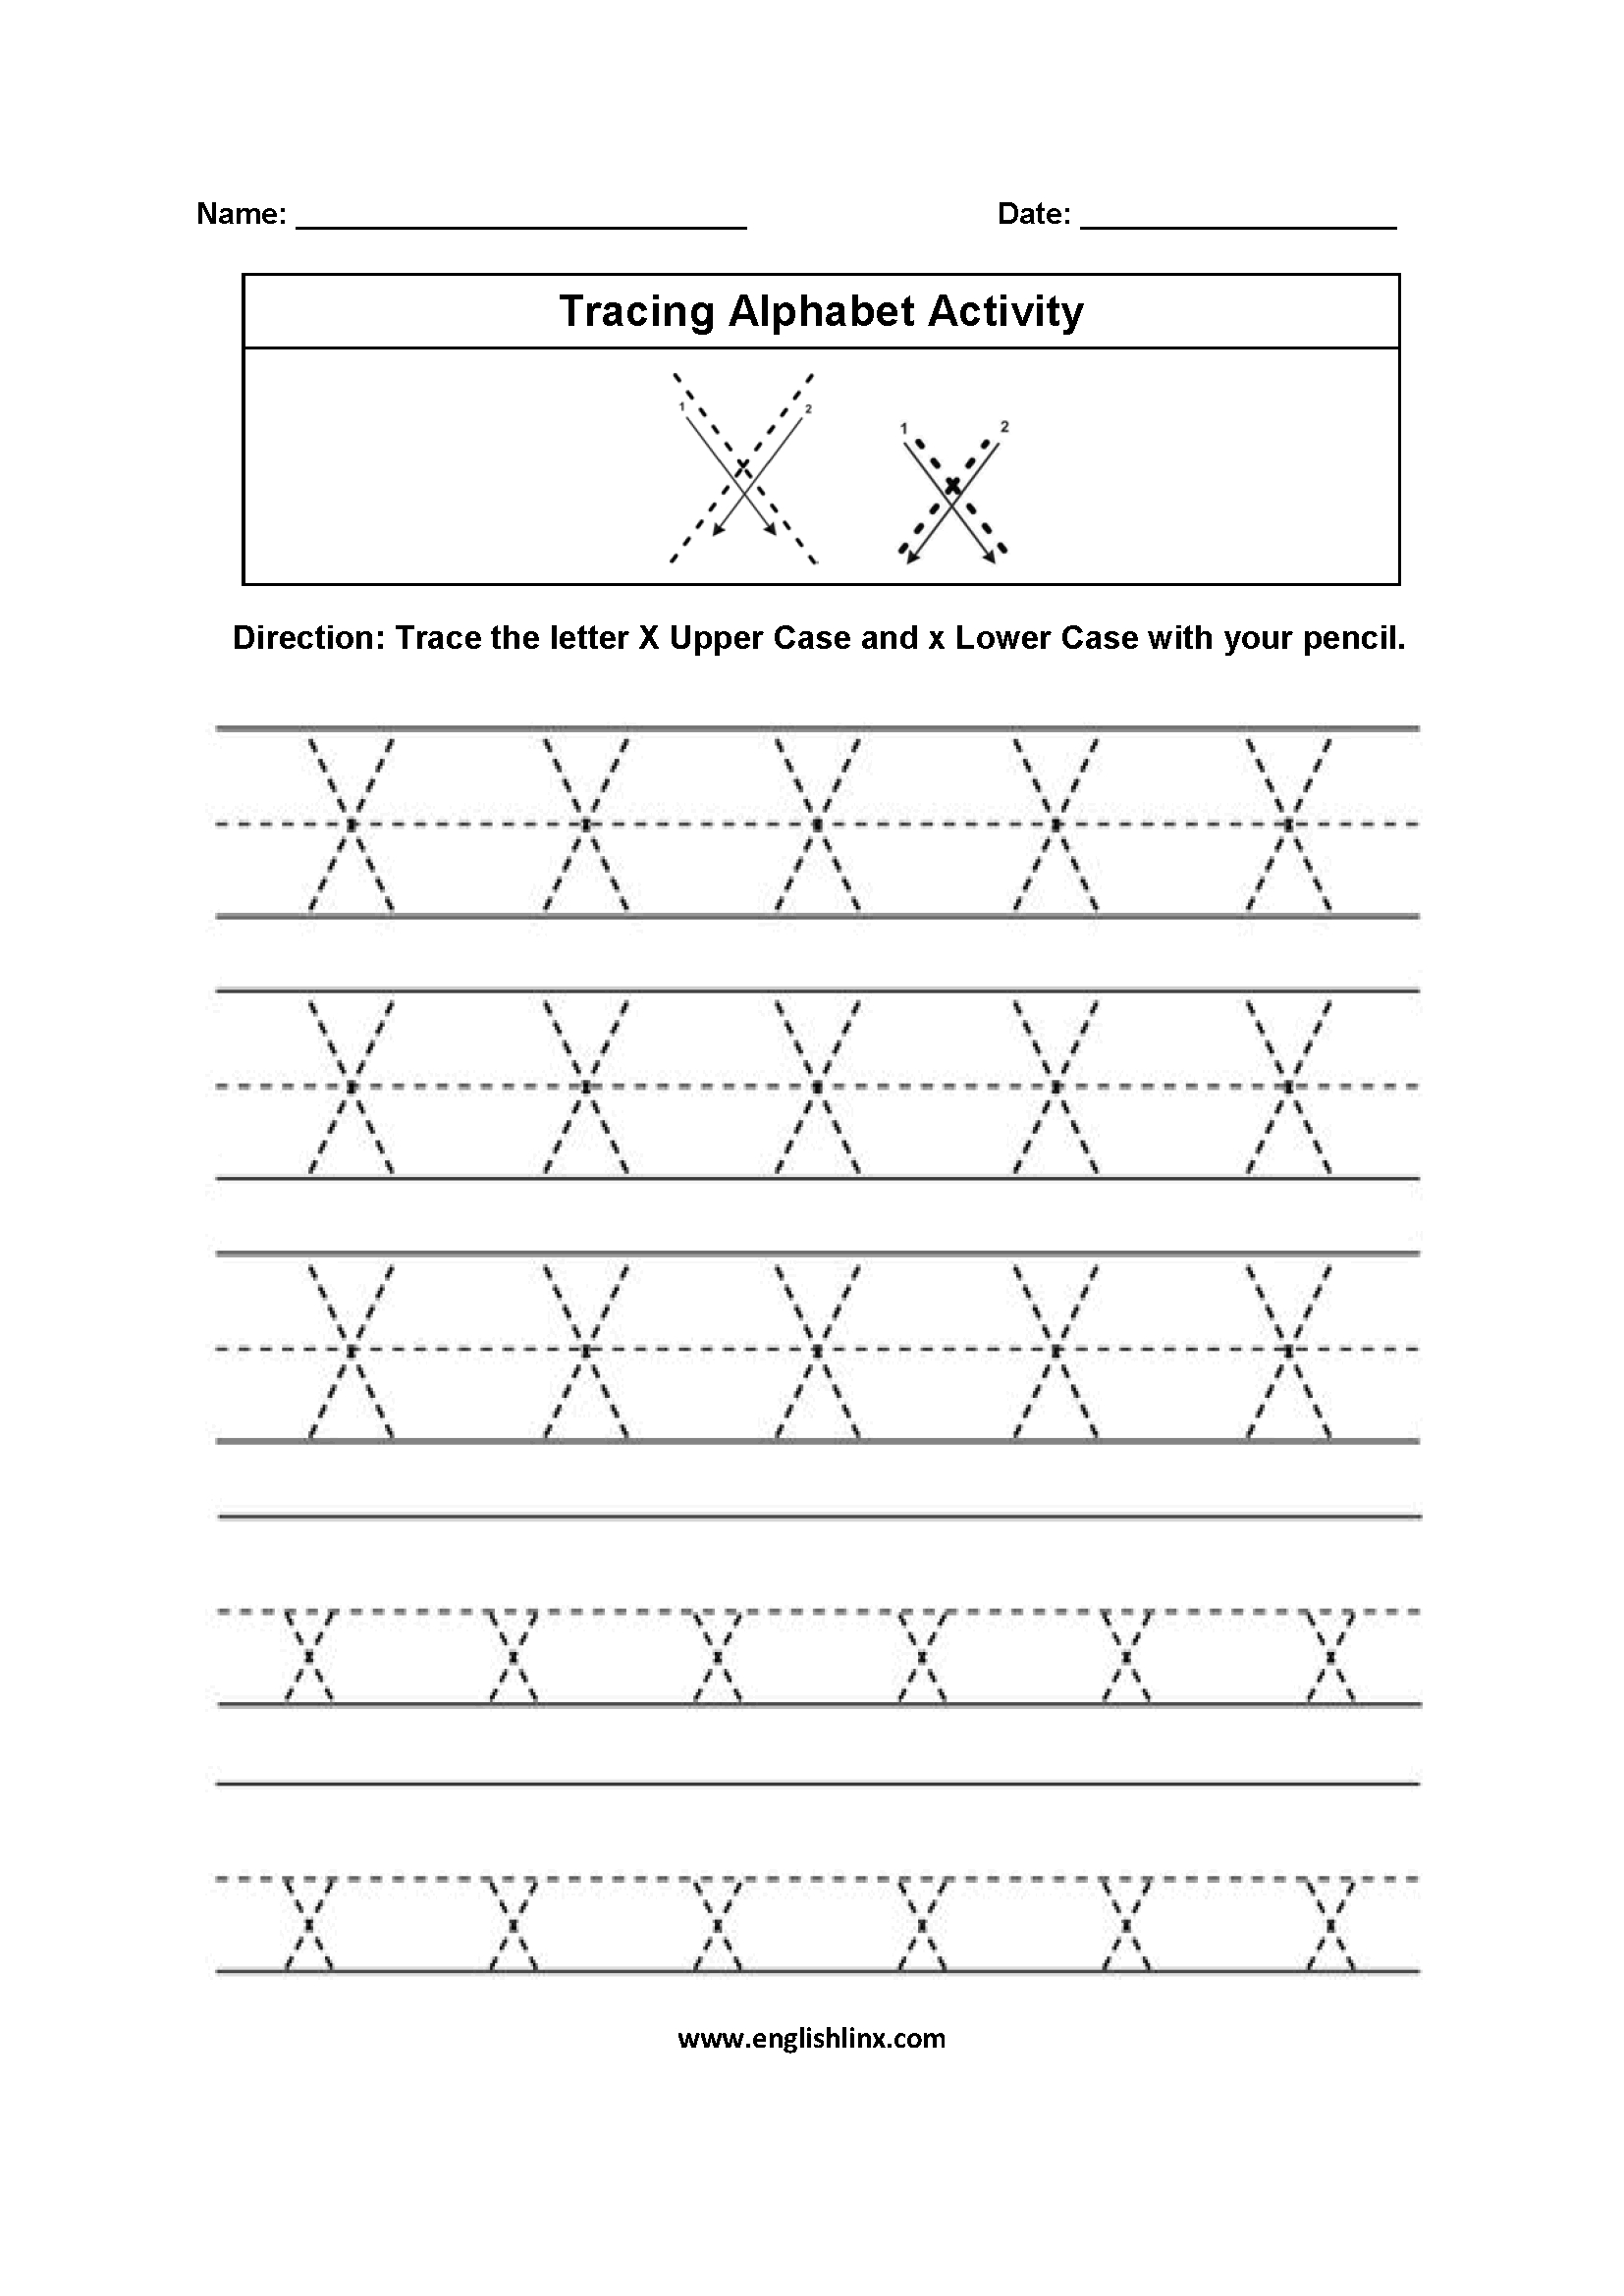 Alphabet Worksheets | Tracing Alphabet Worksheets pertaining to Tracing Letter X Worksheets